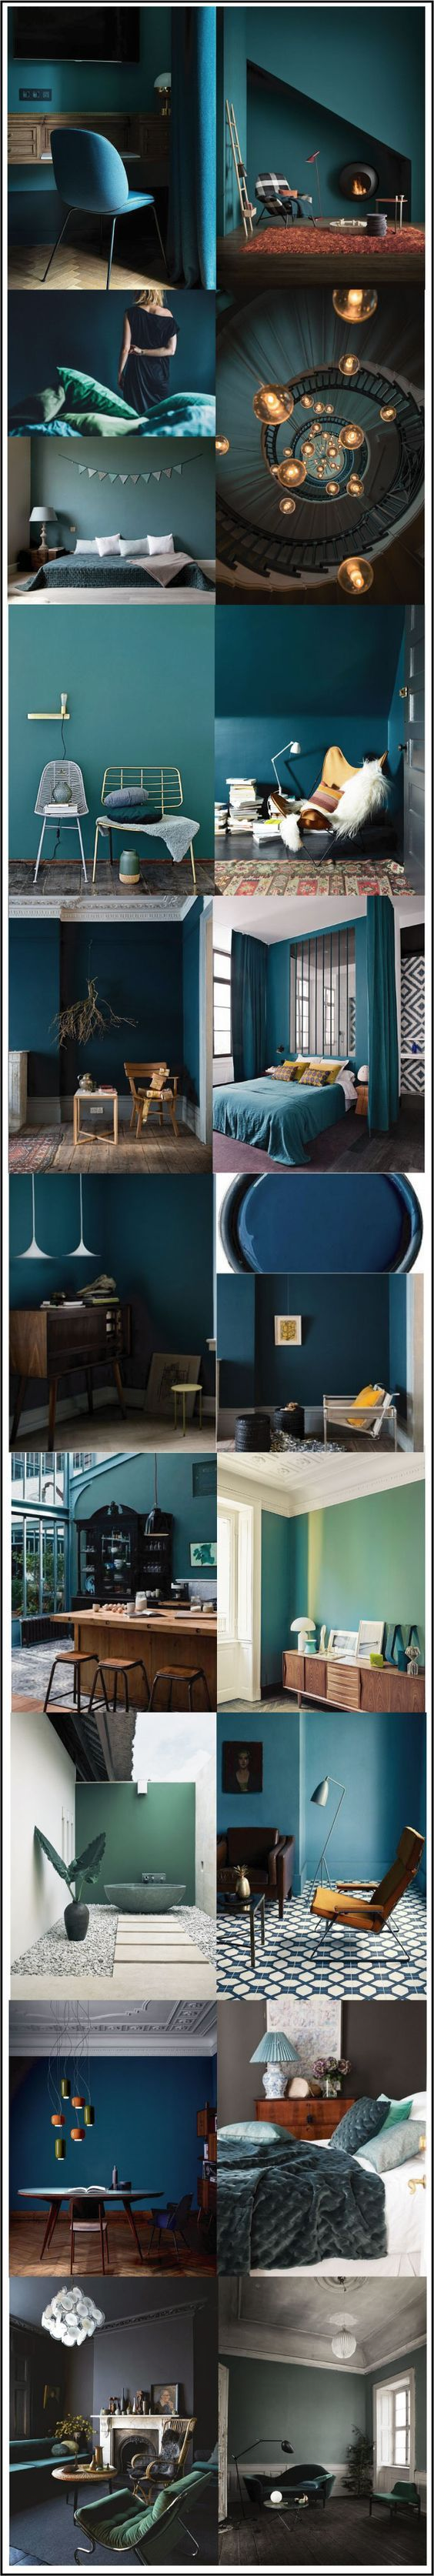 best 25 mood board interior ideas on pinterest interior design boards sample boards and. Black Bedroom Furniture Sets. Home Design Ideas